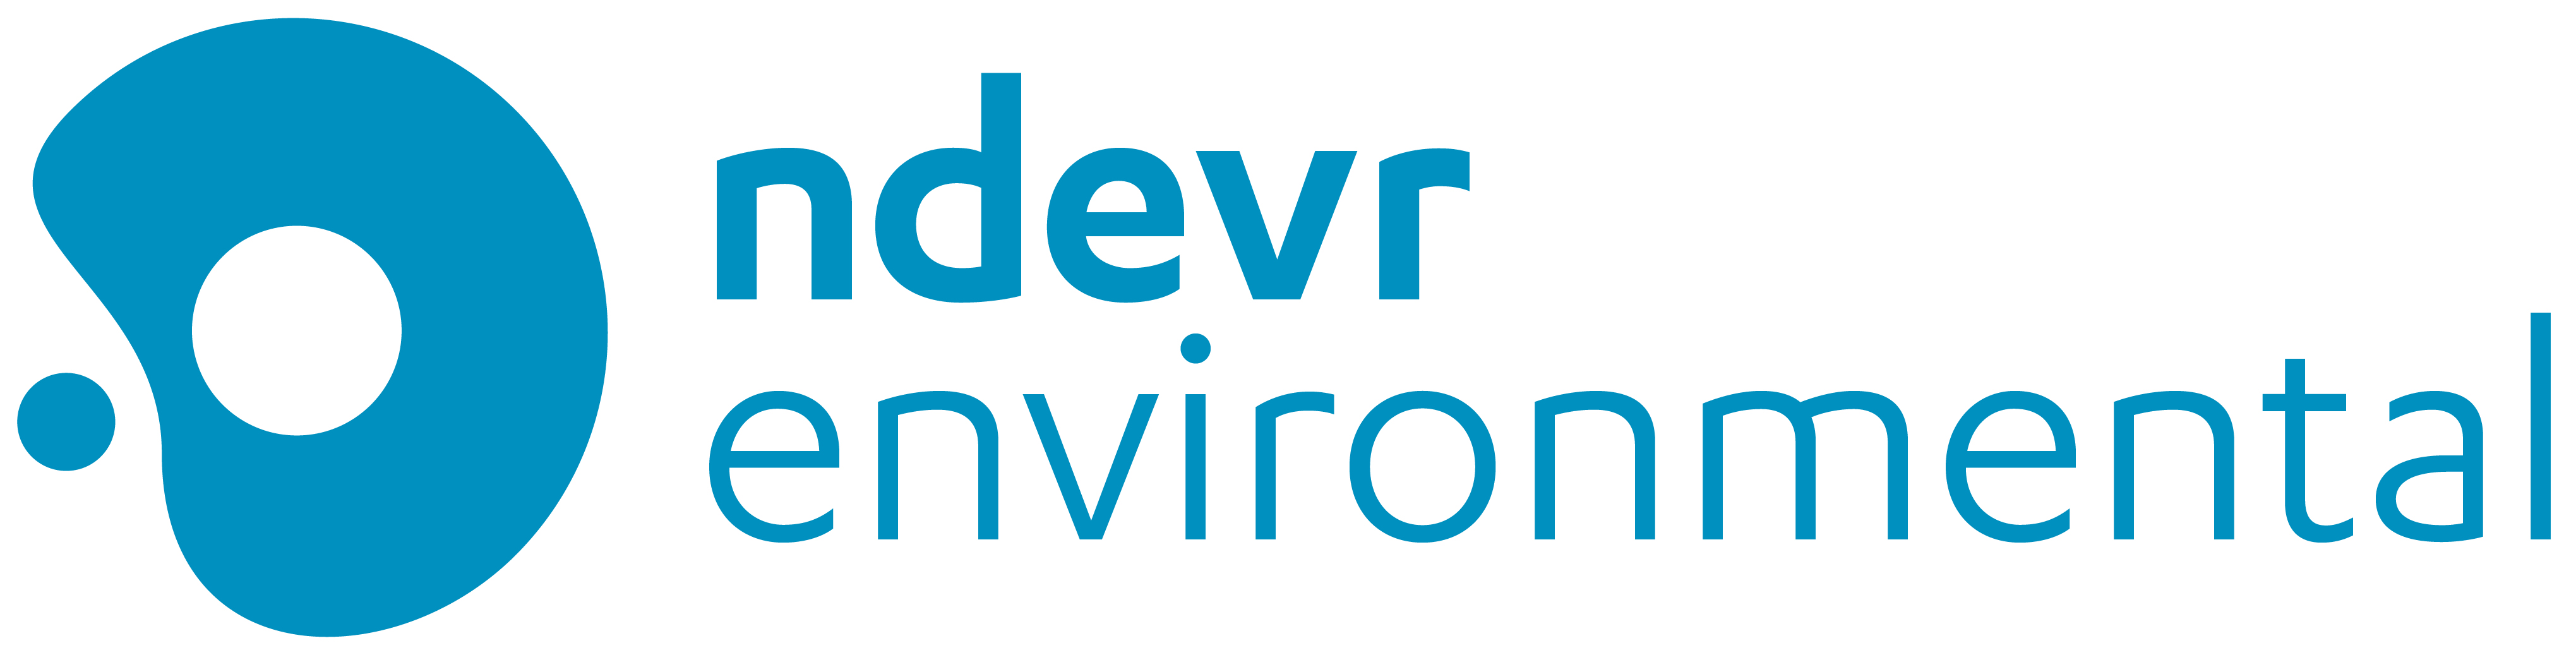 Ndevr Environmental is a specialist carbon, energy and sustainability focussed consultancy firm that partners with clients to achieve positive business and environmental outcomes through the provision of professional services.